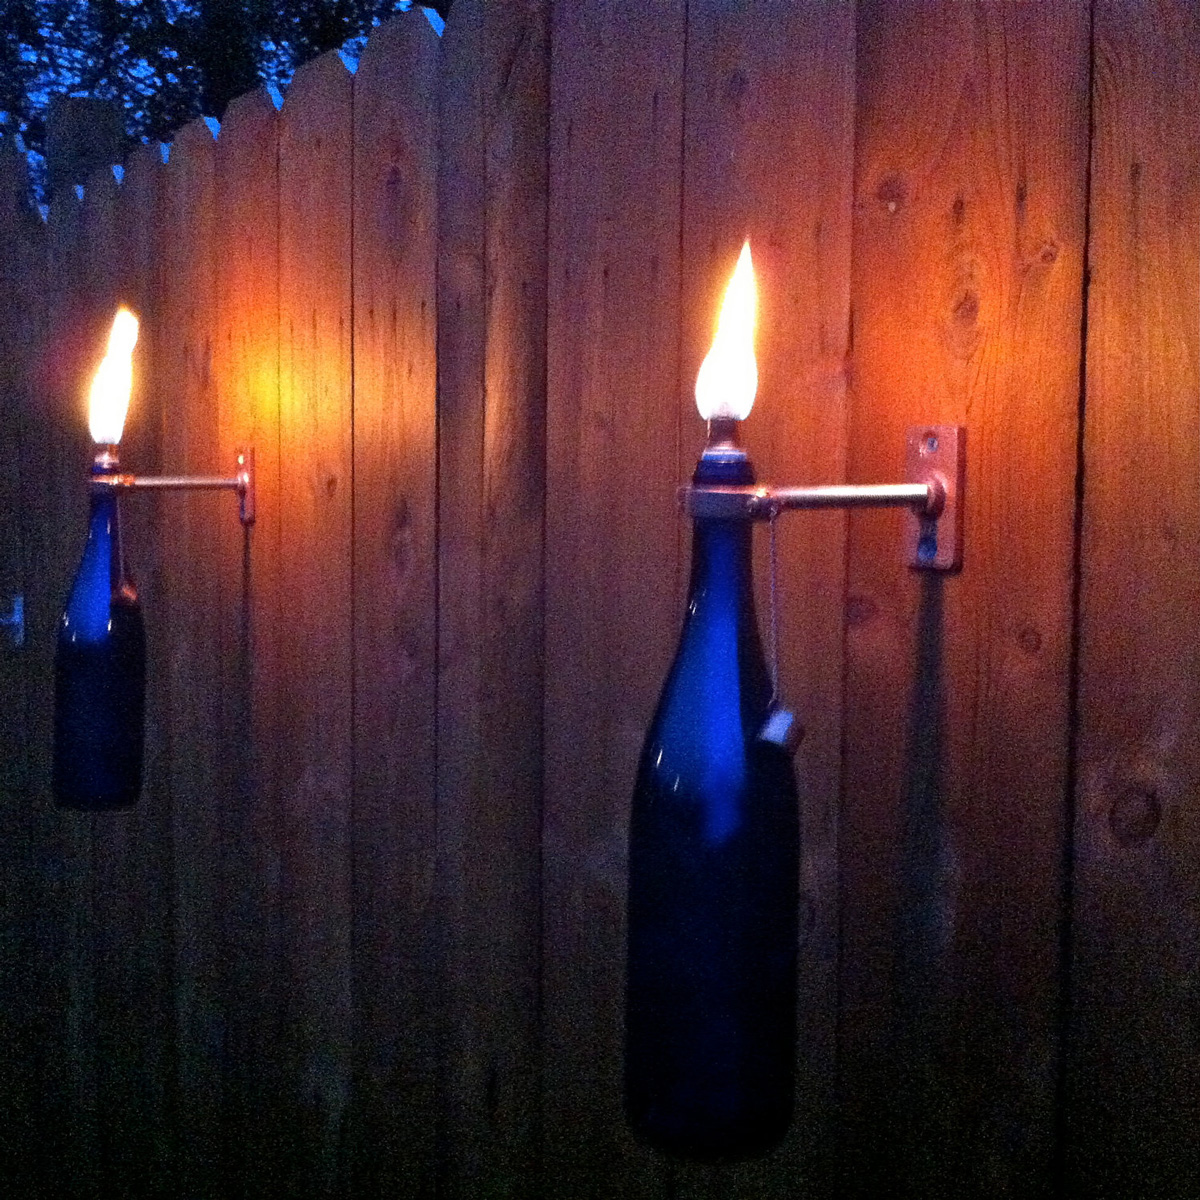 Wall Mounted Citronella Lamps : Mounted Wine Bottle Tiki Torches - The Green Head